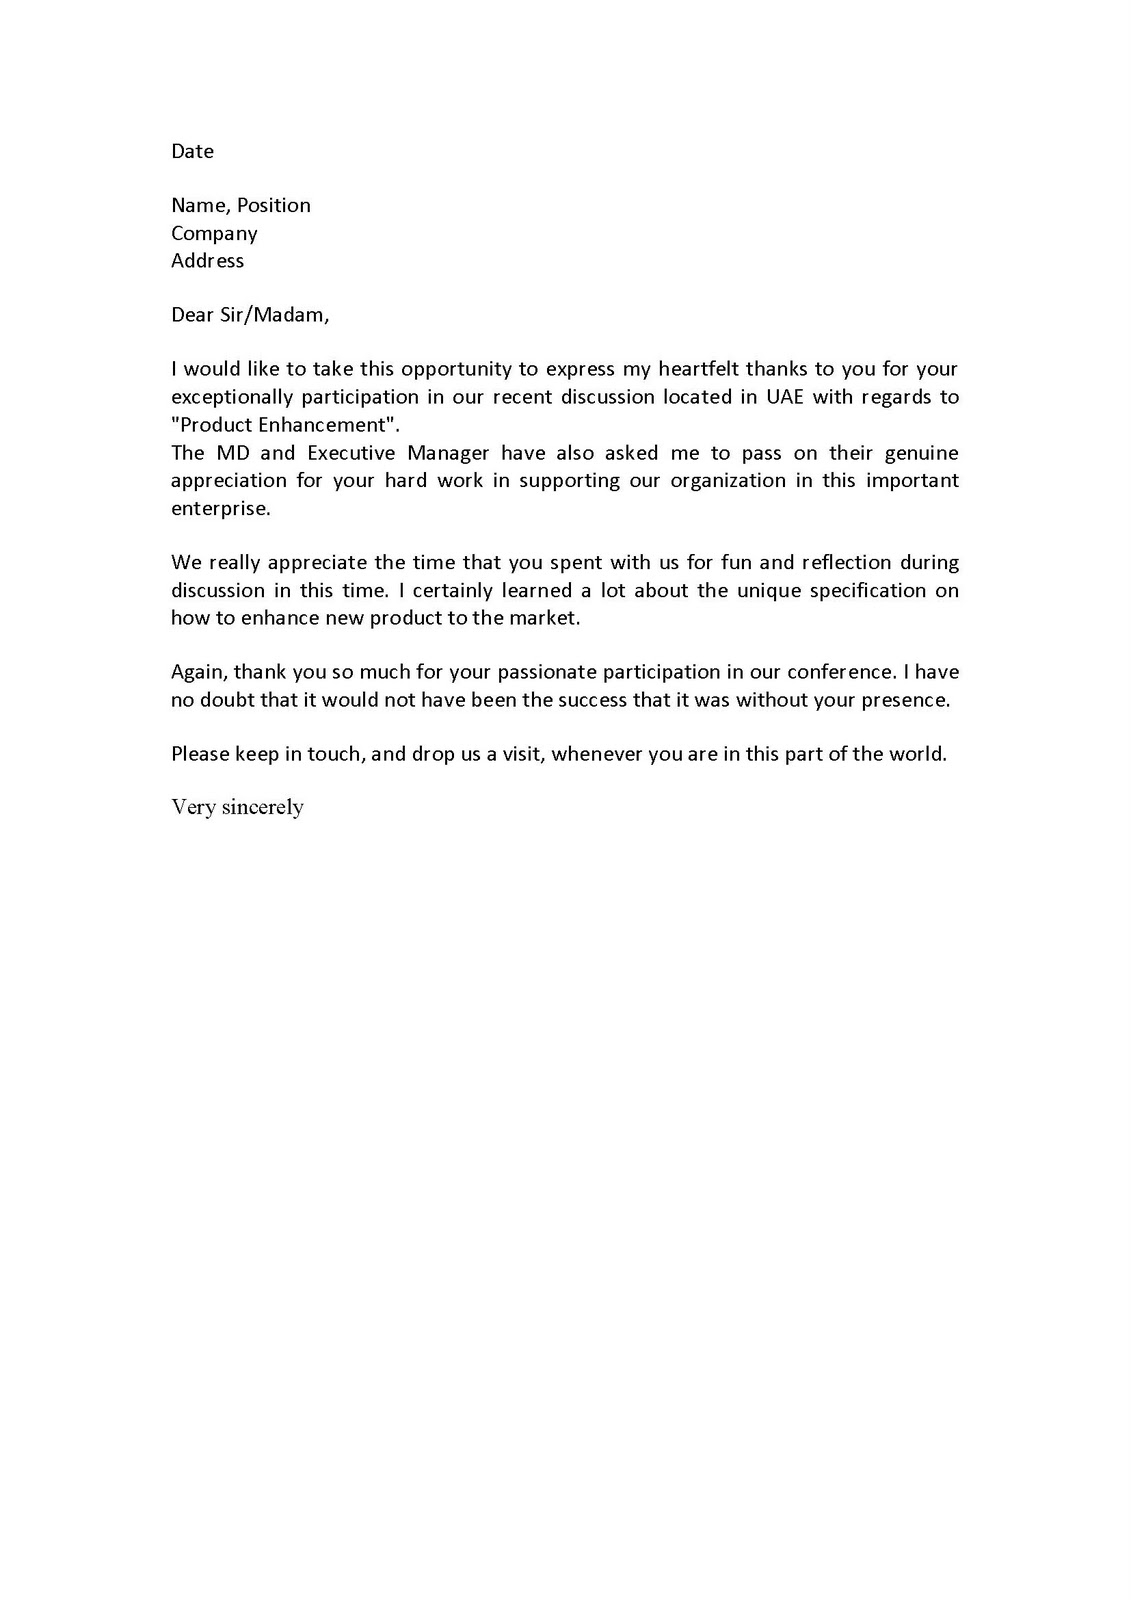 Personal Reference Letter for A Friend Template - Character Reference Letter for A Friend Pdf format